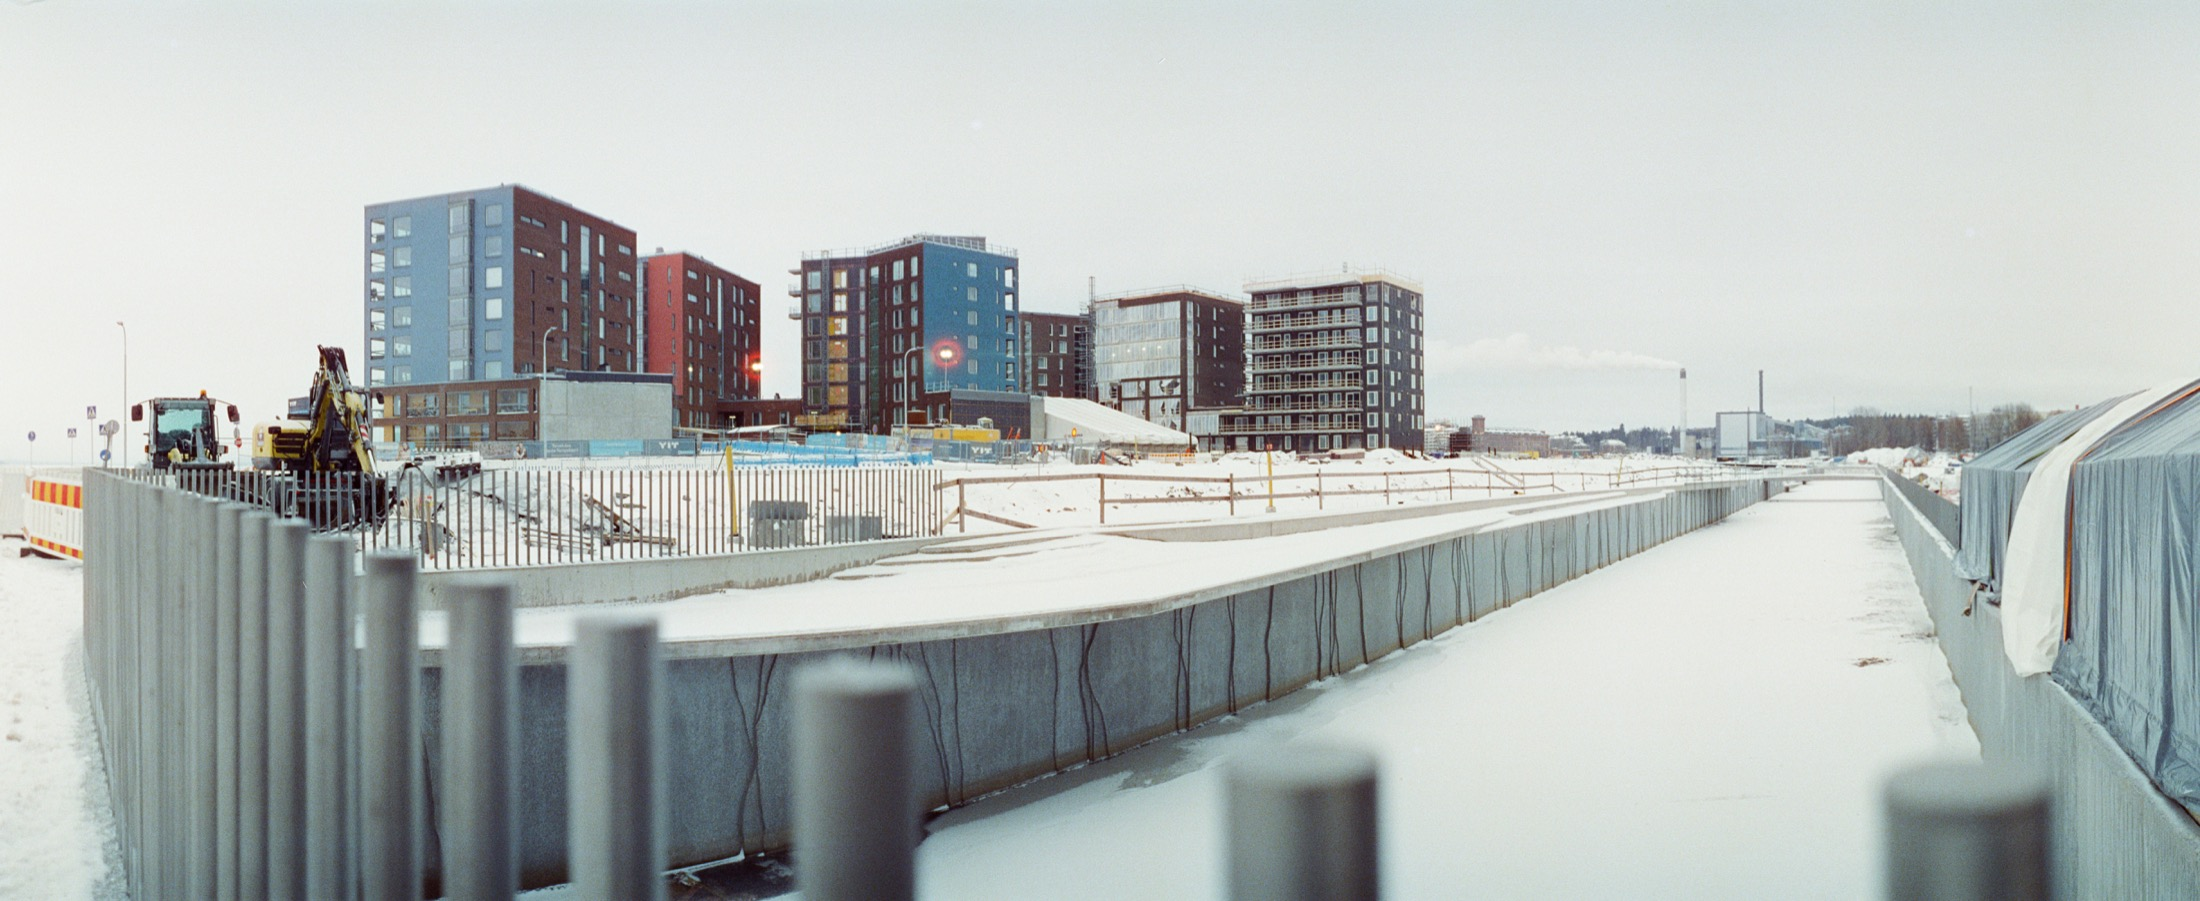 cameraville_horizon_202_panoramic_35mm_tampere_cineStill800_14.jpg